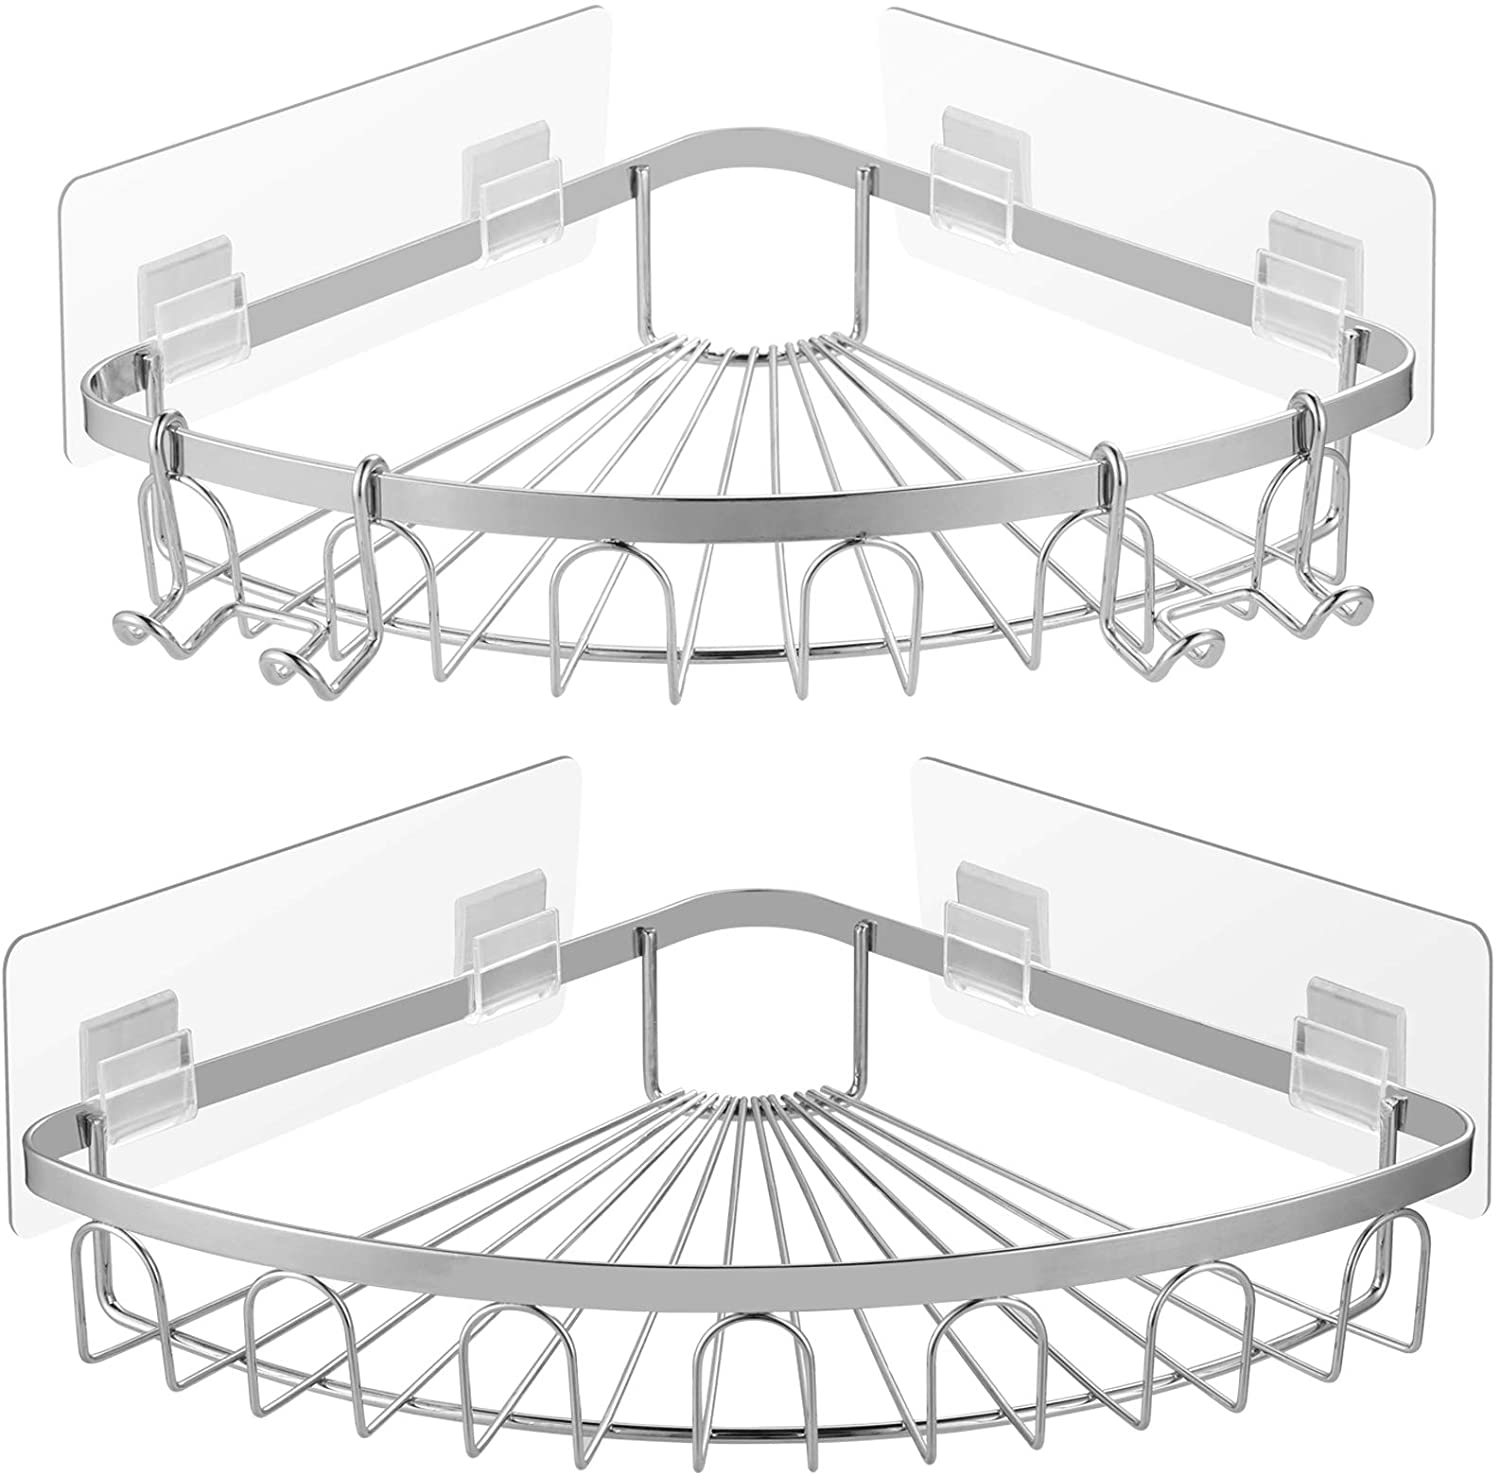 Carwiner Adhesive Corner Shower Caddy 2-Pack, Wall Mounted Bathroom Shelf, 304 Stainless Steel Wide Space Shower Shelf with Hooks, Hanging Storage Organizer Strong and Sturdy for Kitchen No Drilling